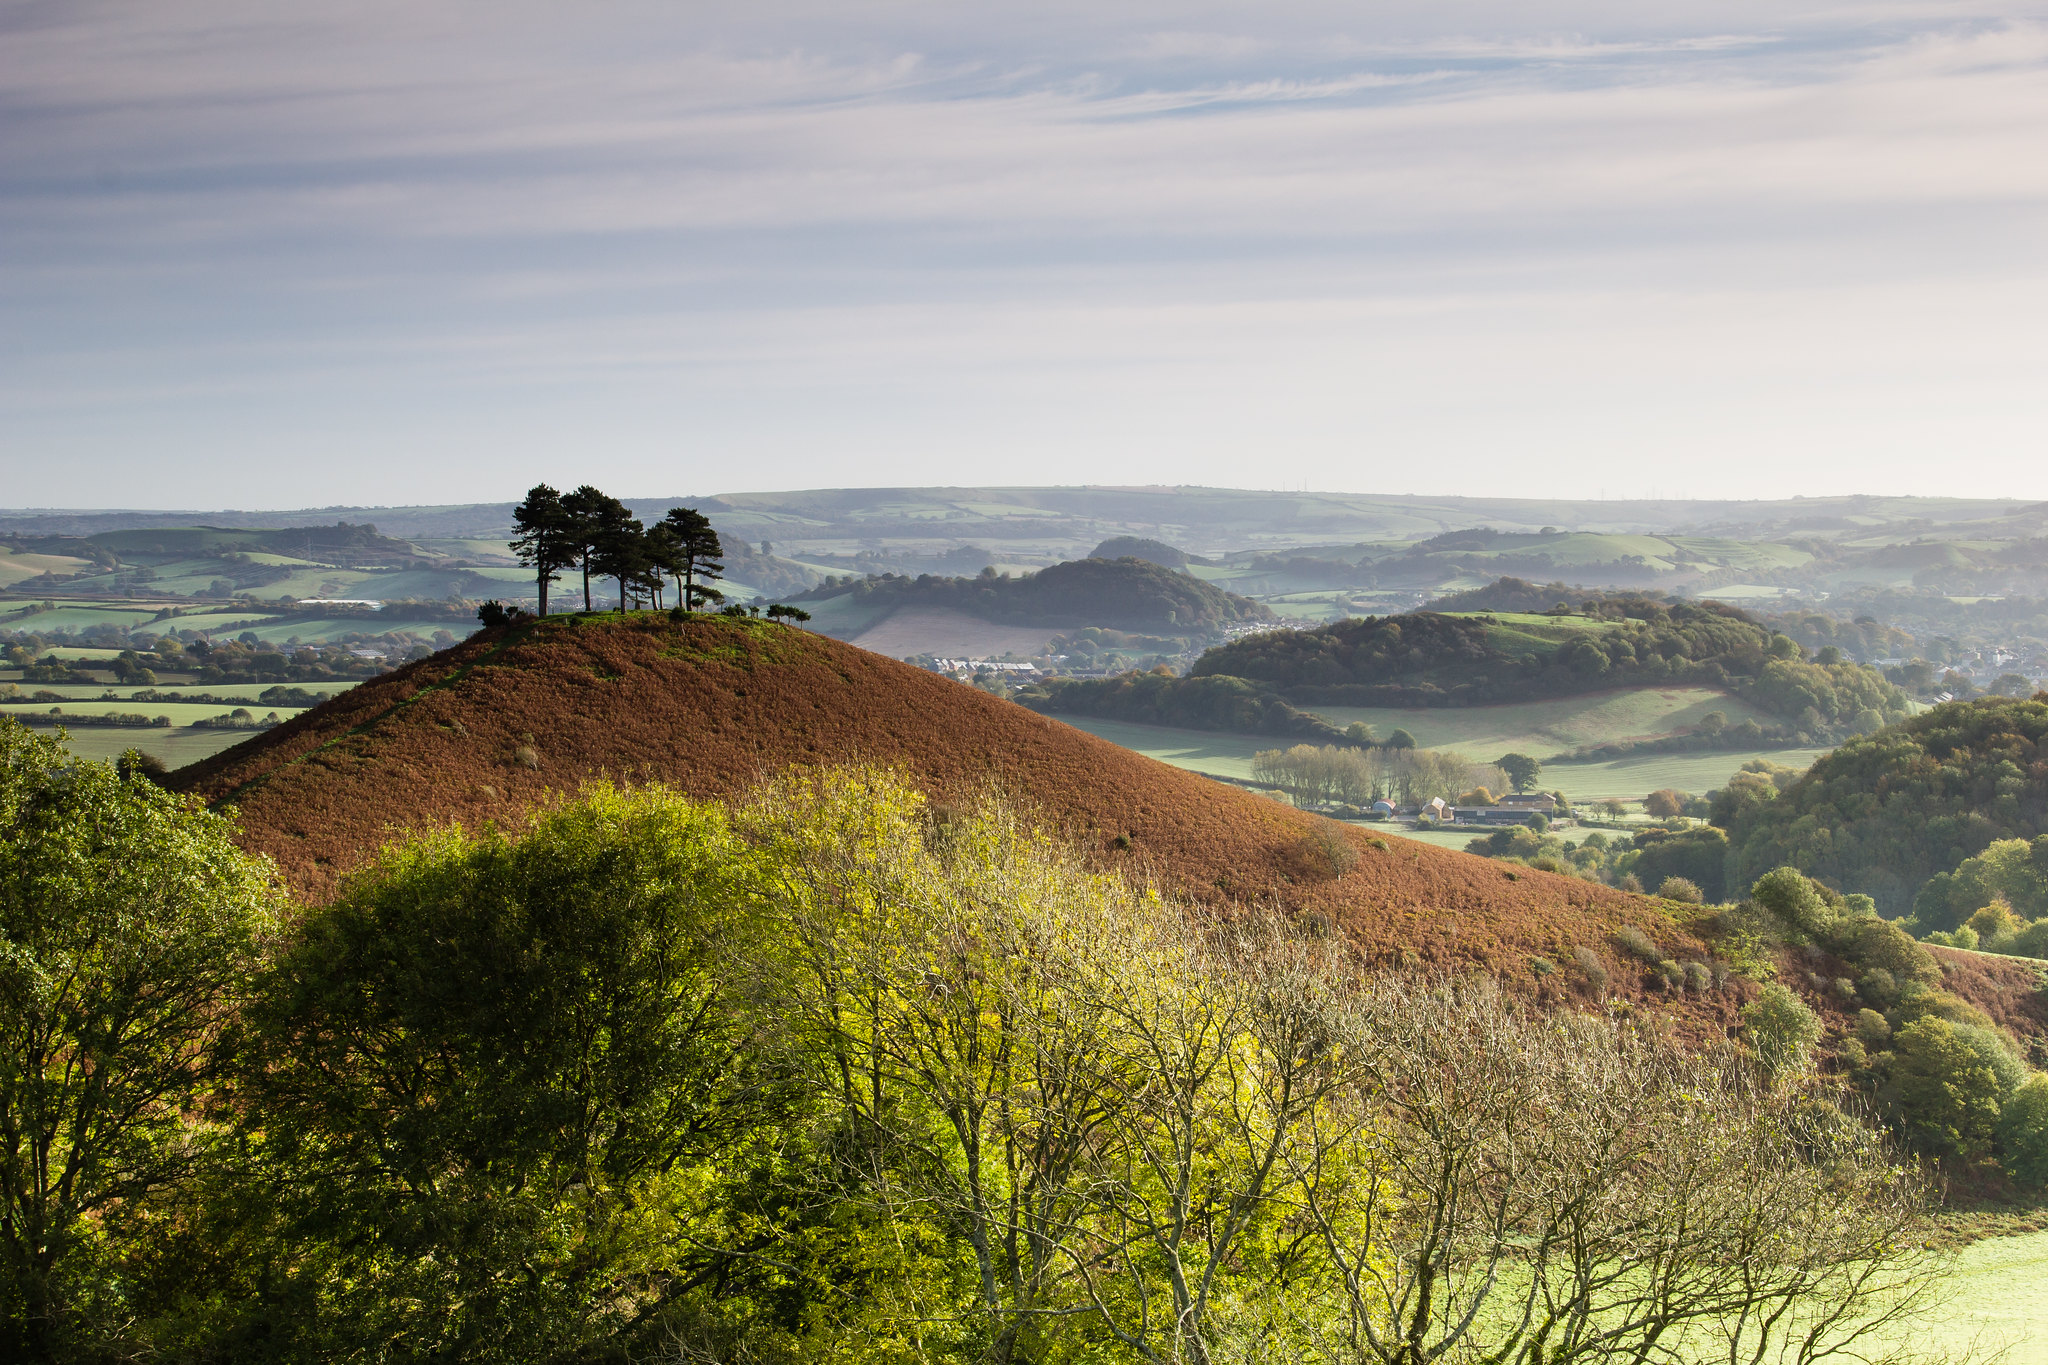 Photo of Colmer's Hill in Dorset: a brown hill in the middle ground with sparse trees on top, and rolling hills and mist in the background